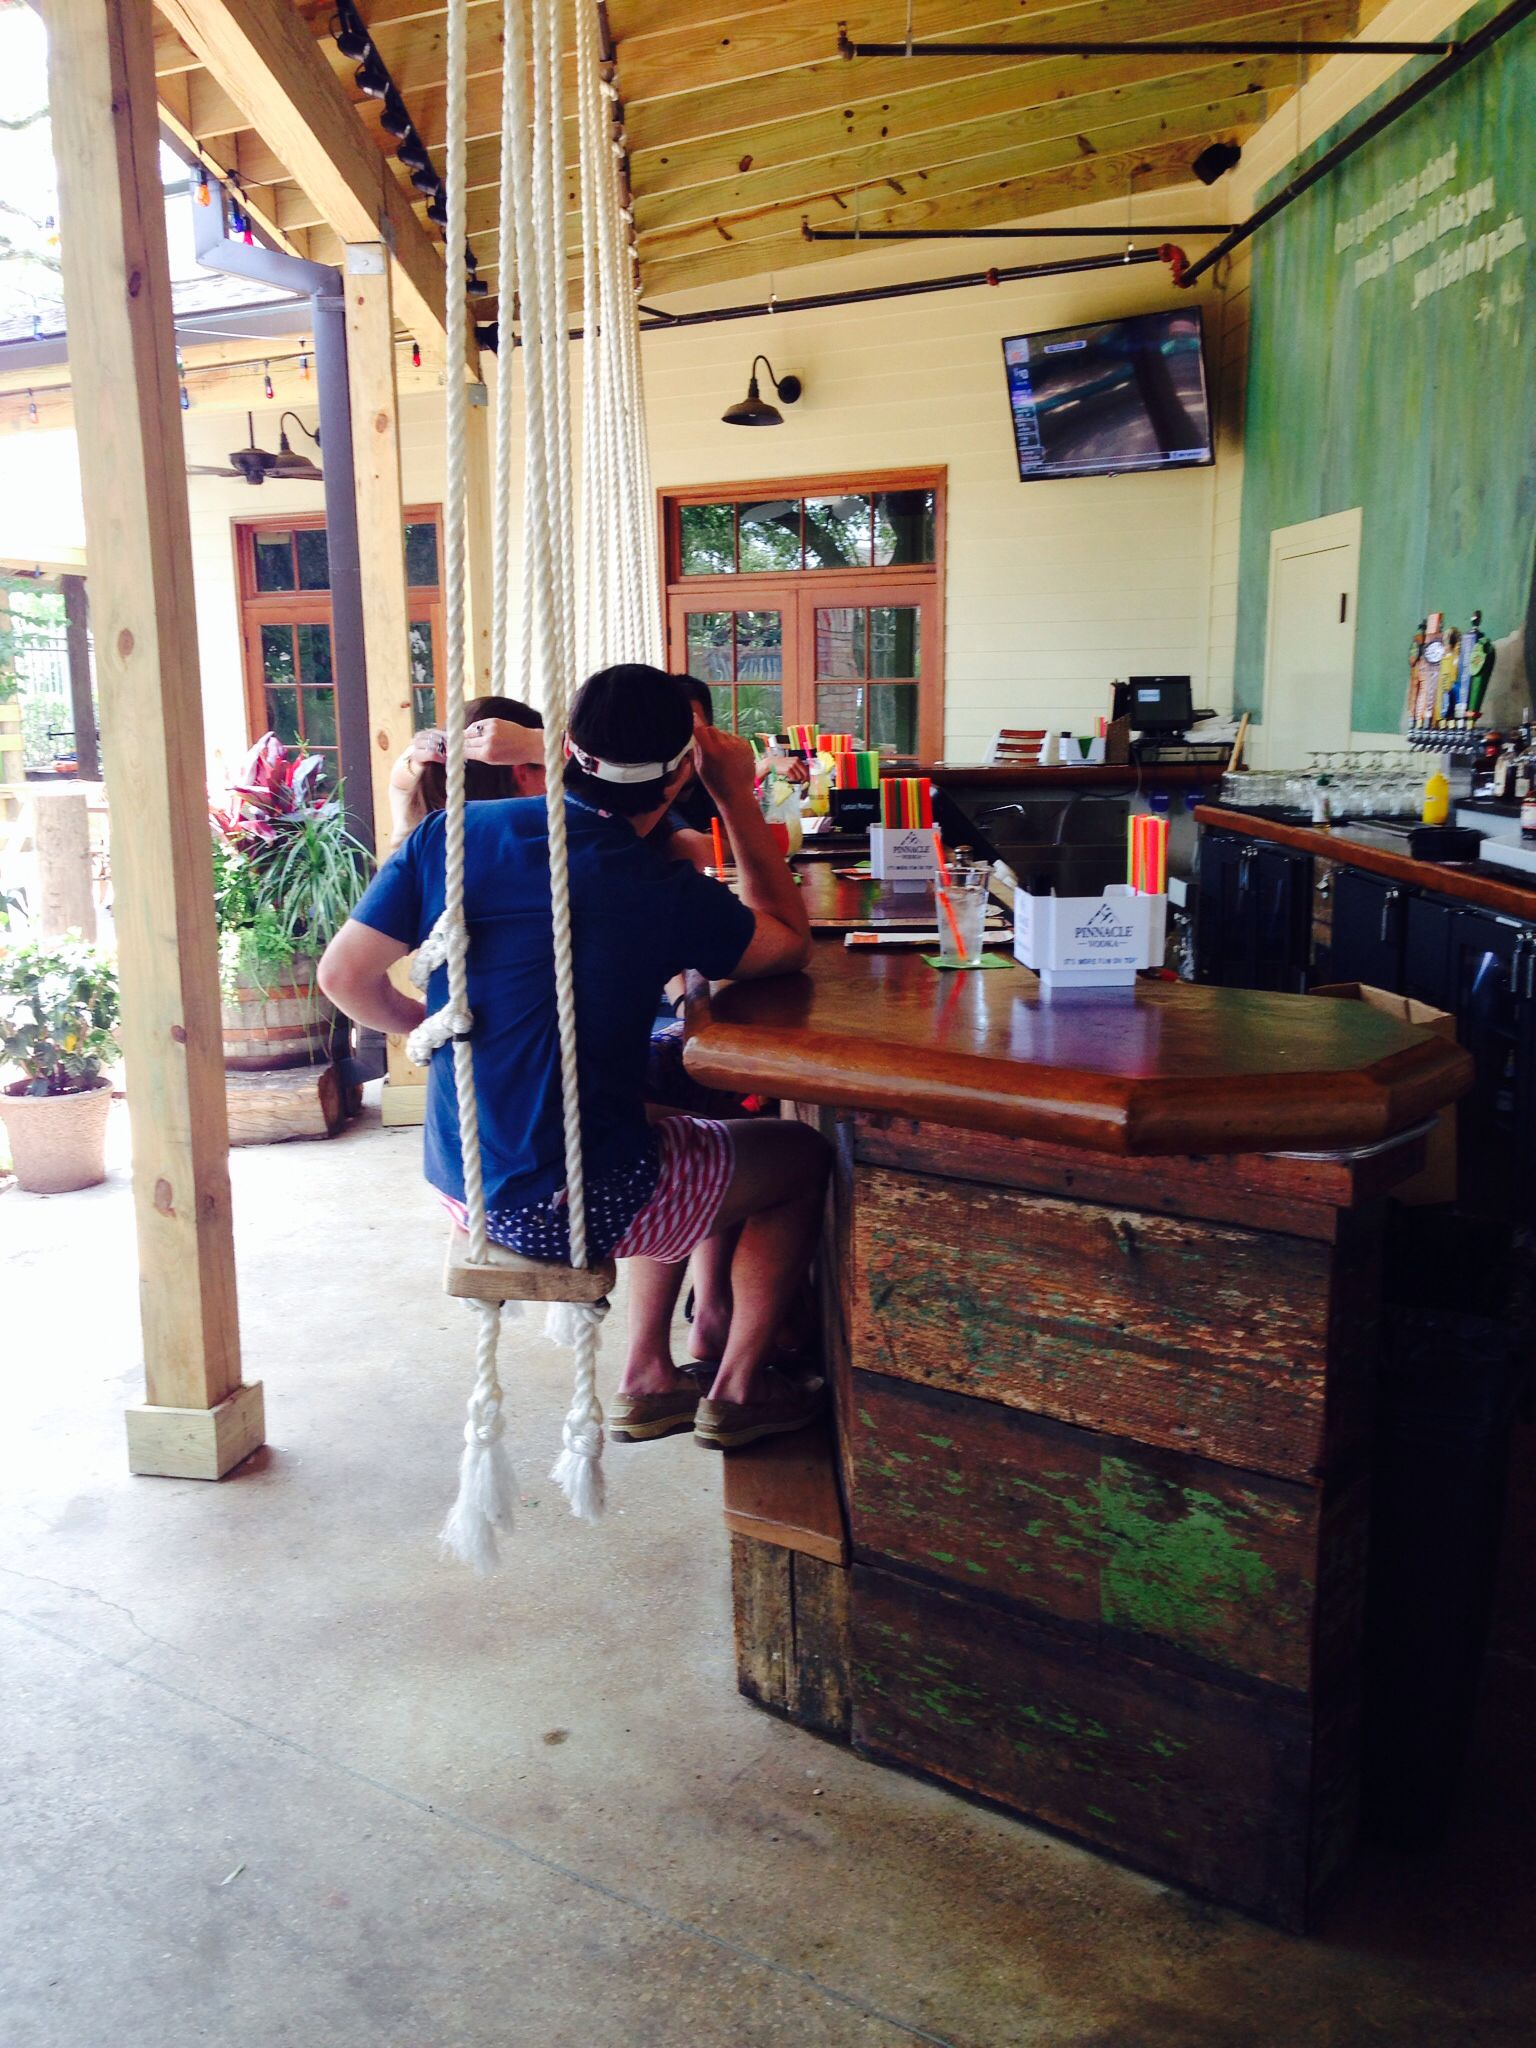 sushi yama wonderful food check out the jill salad delicious this is the bar at the rum house in baton rouge need to try mile